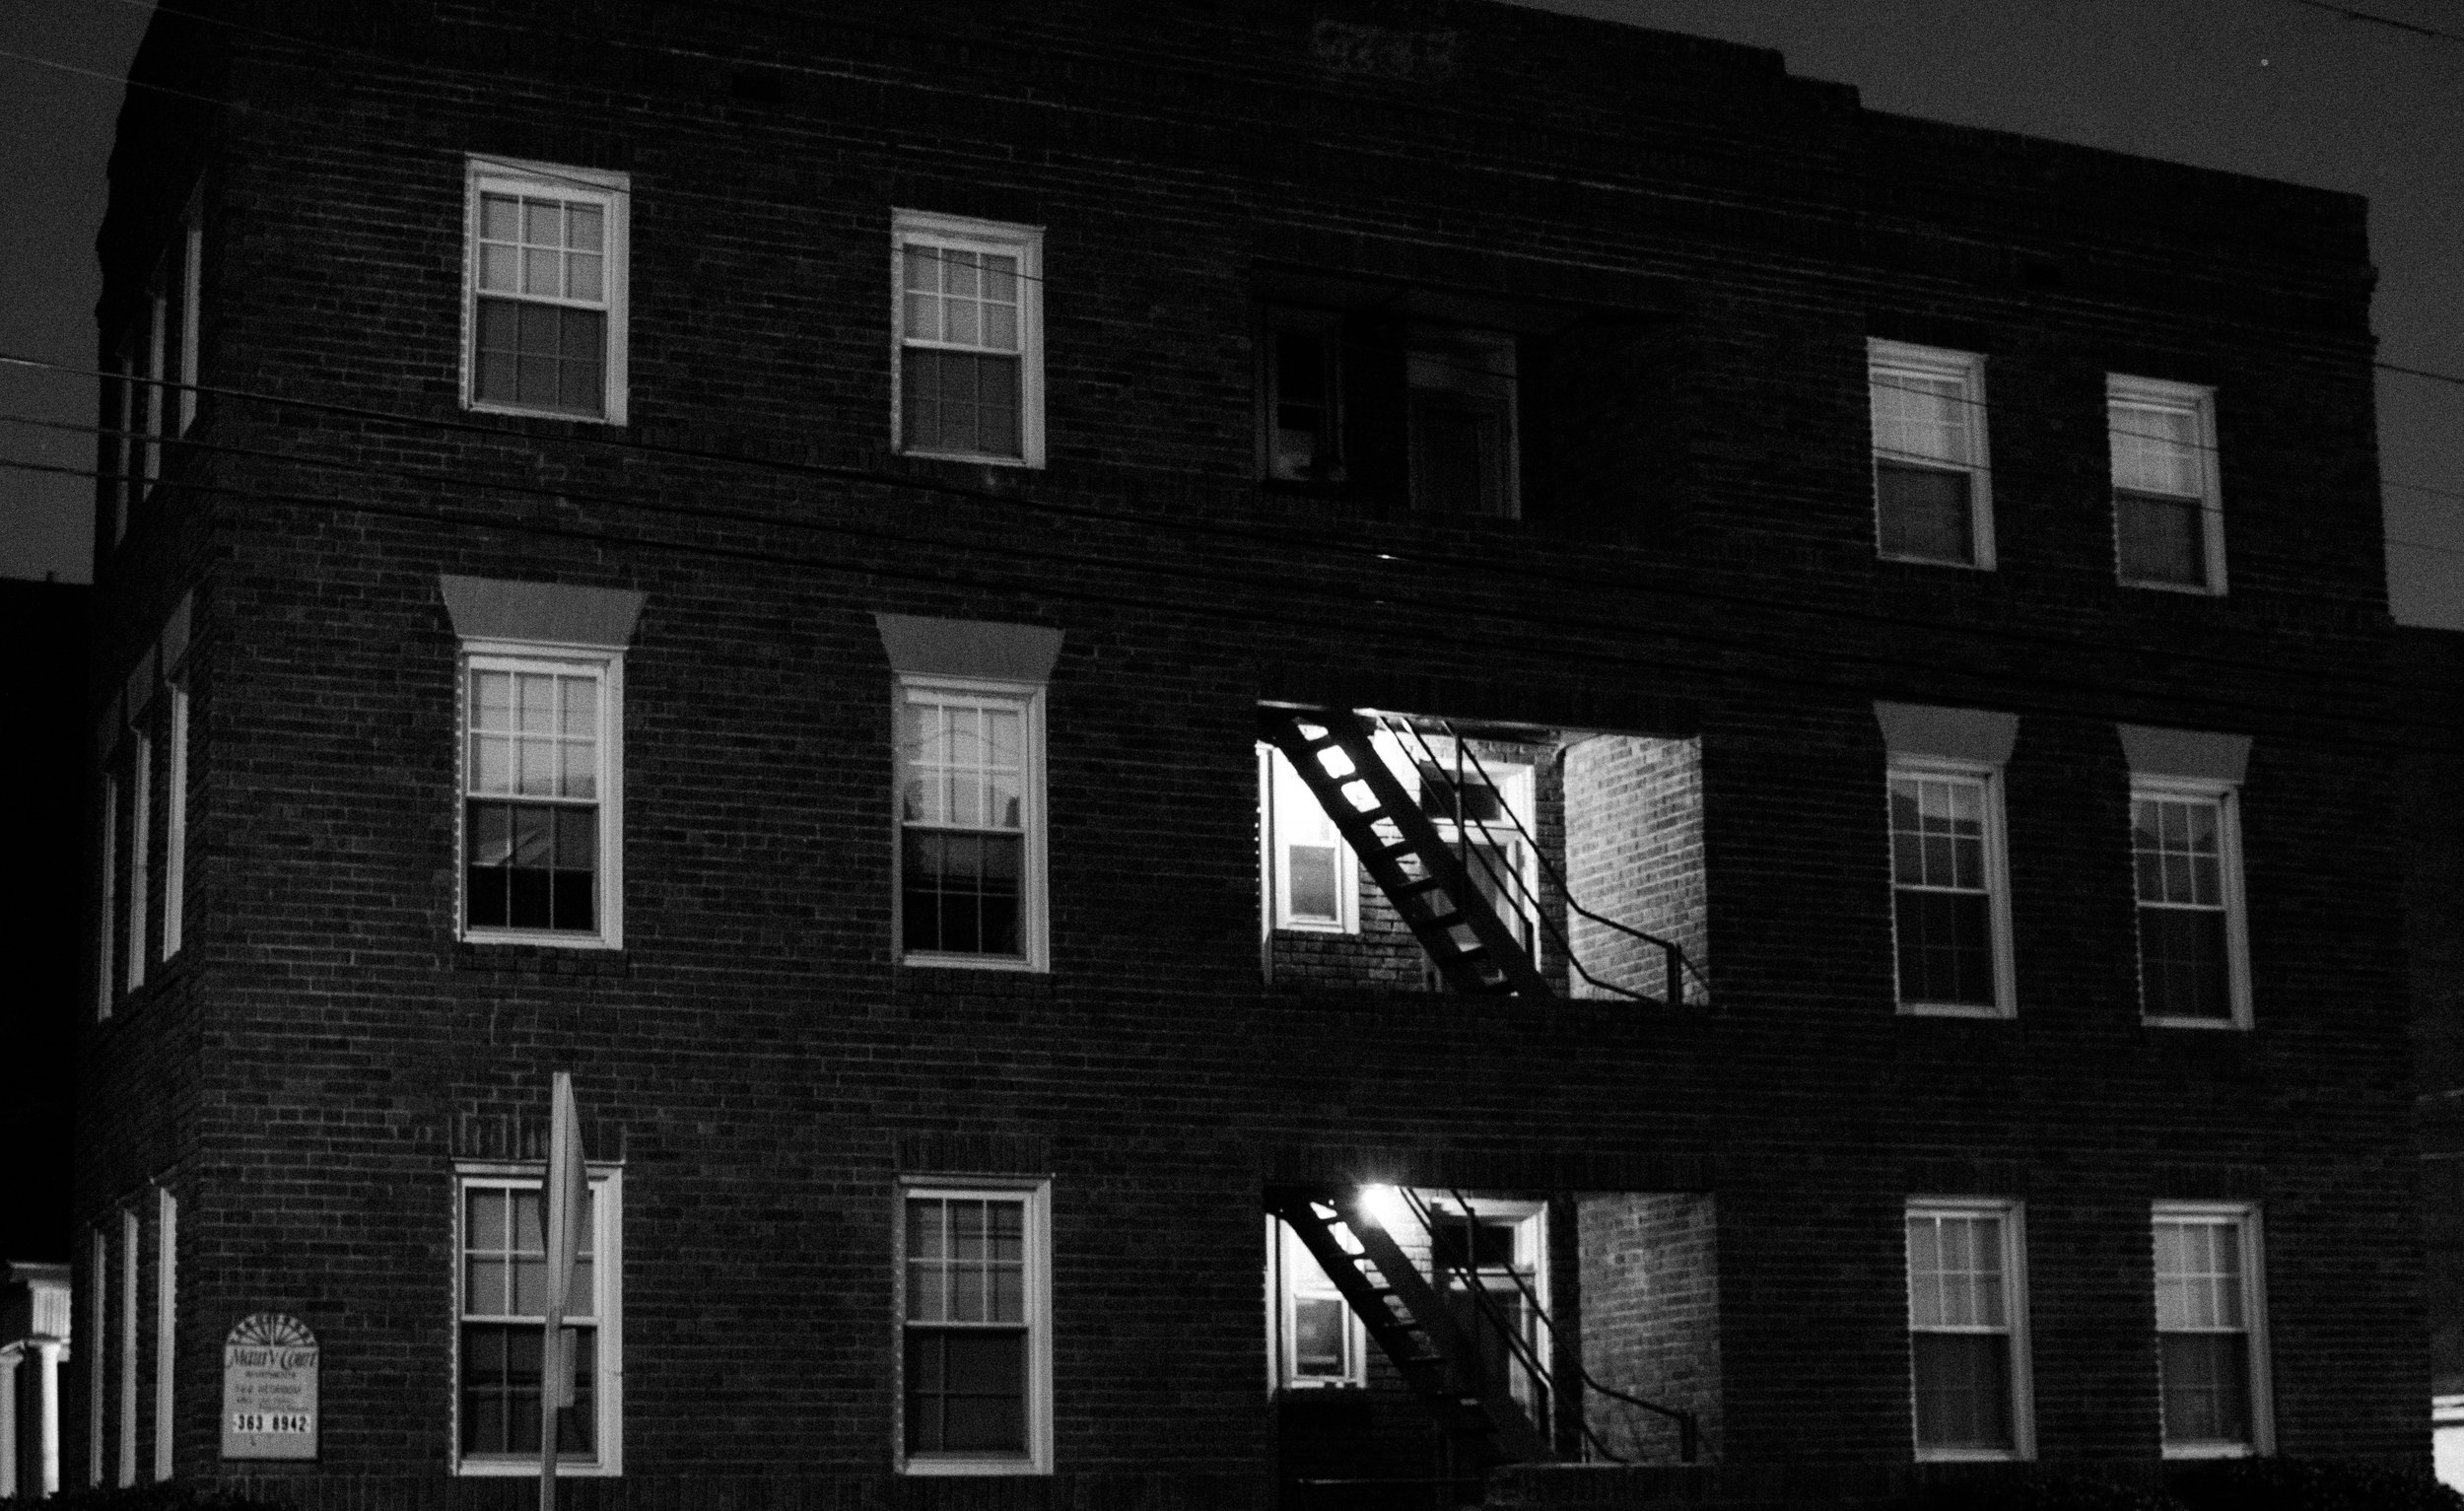 11/29/27. An Apartment On Colley. Ilford Pan F